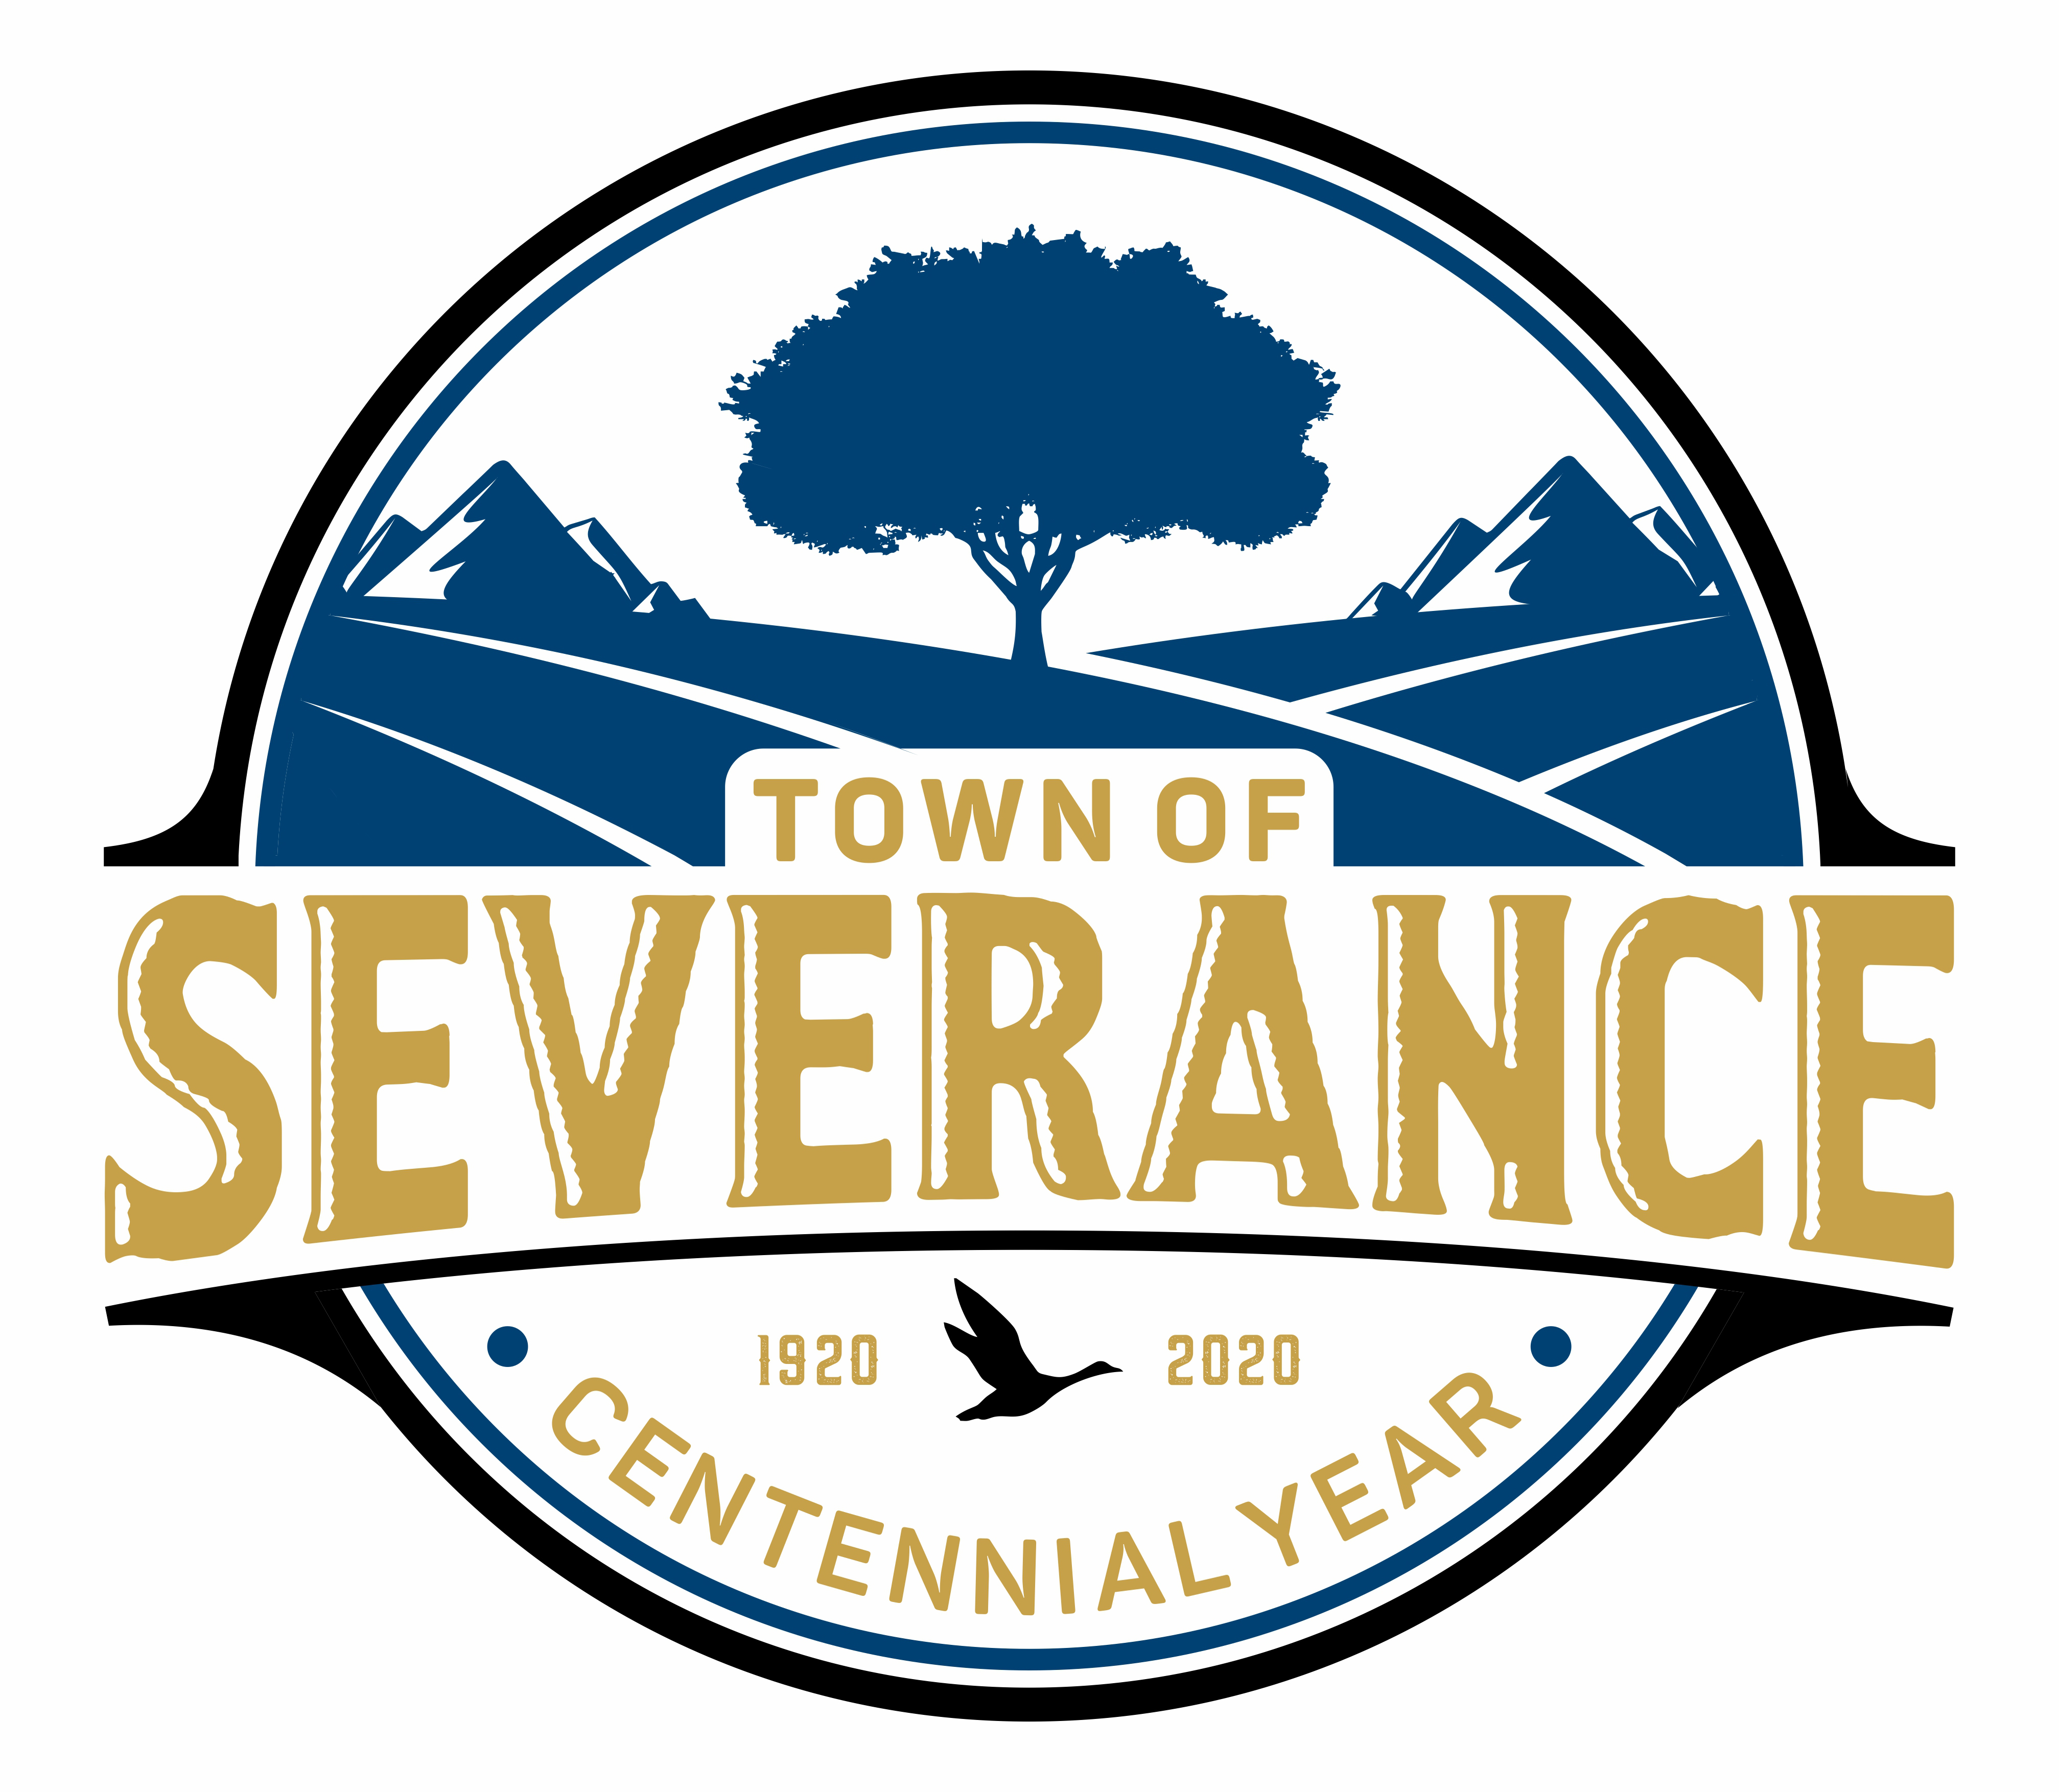 Organization logo of Town of Severance